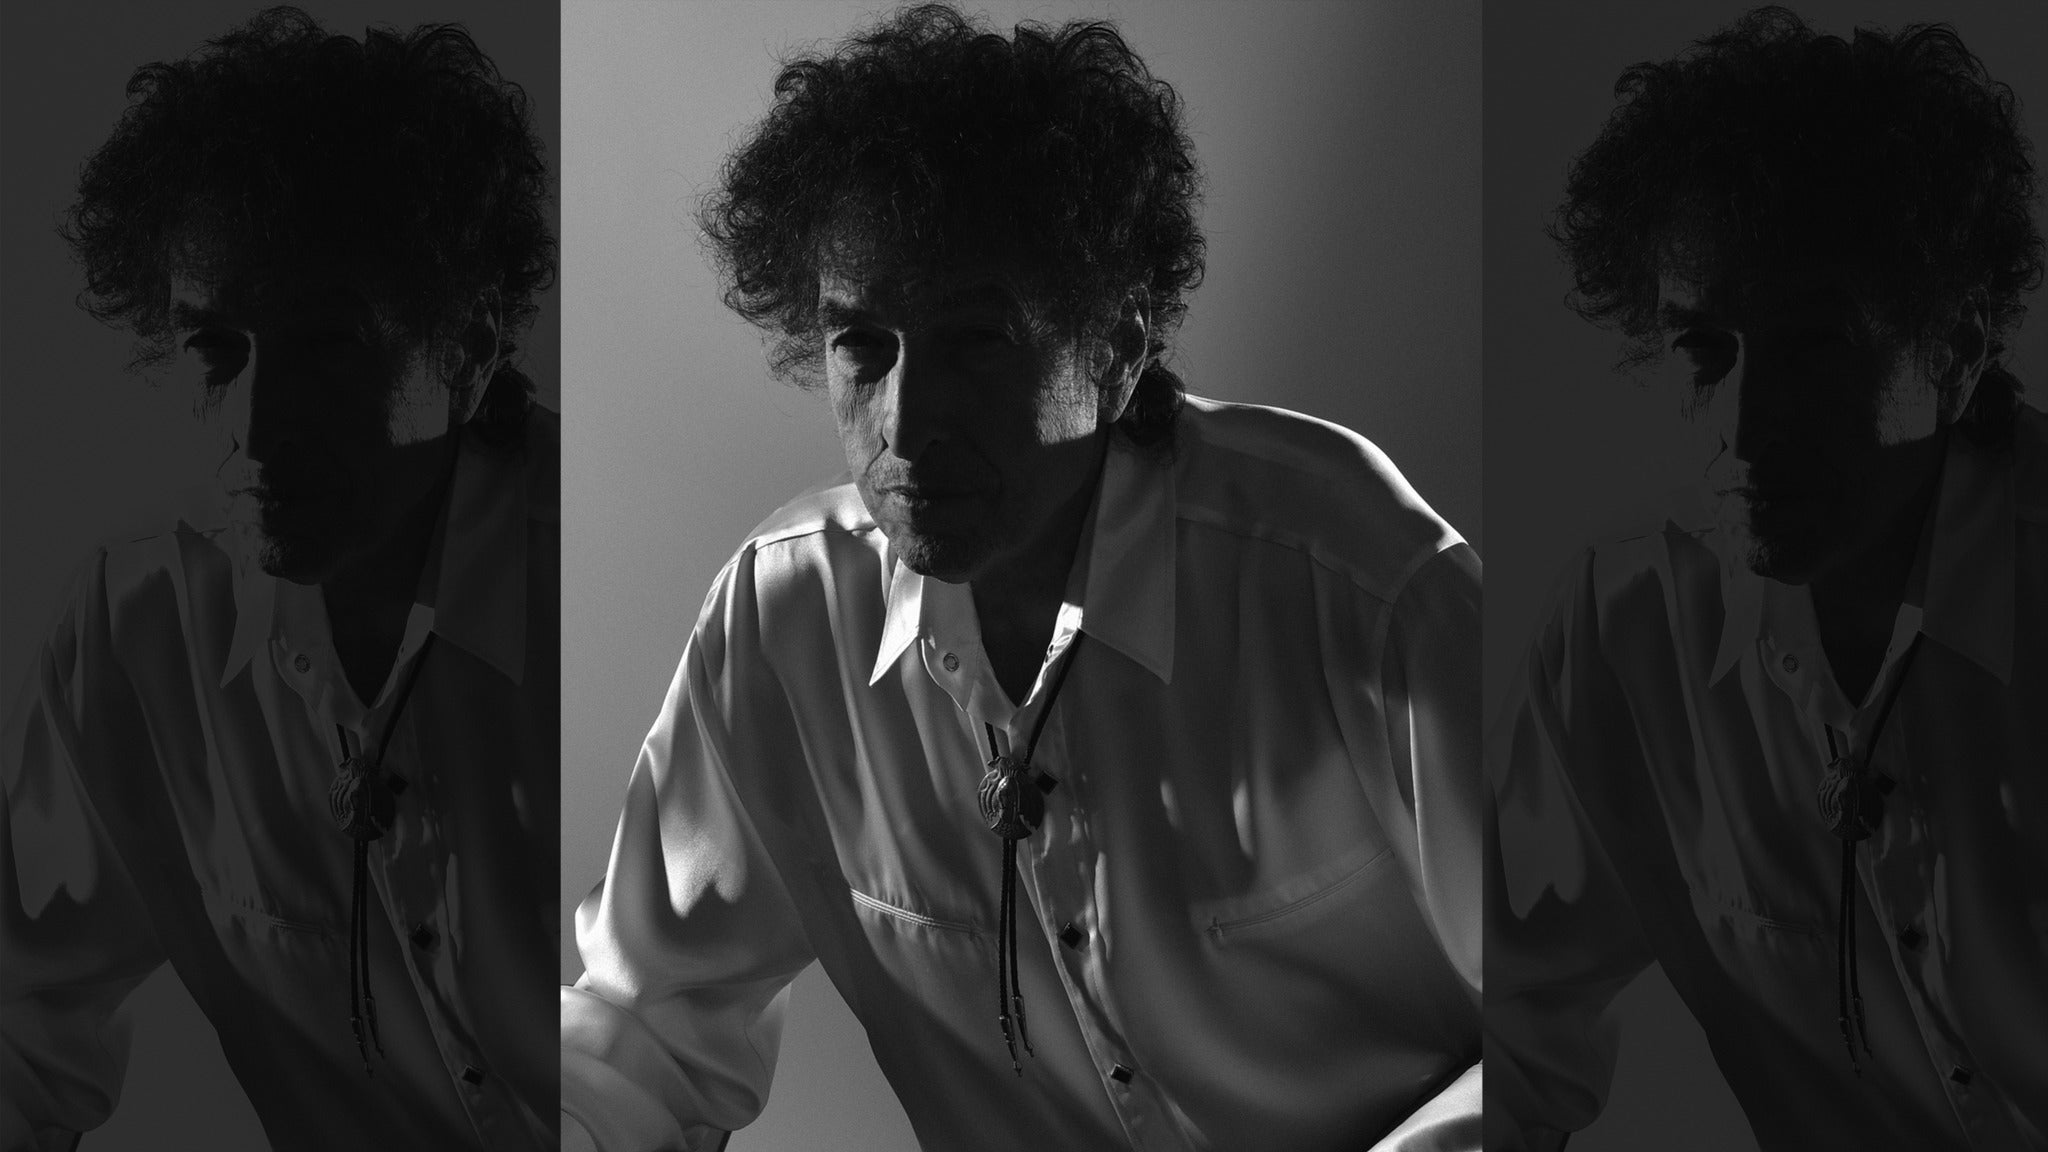 Bob Dylan at Times-Union Ctr Perf Arts Moran Theater - Jacksonville, FL 32202